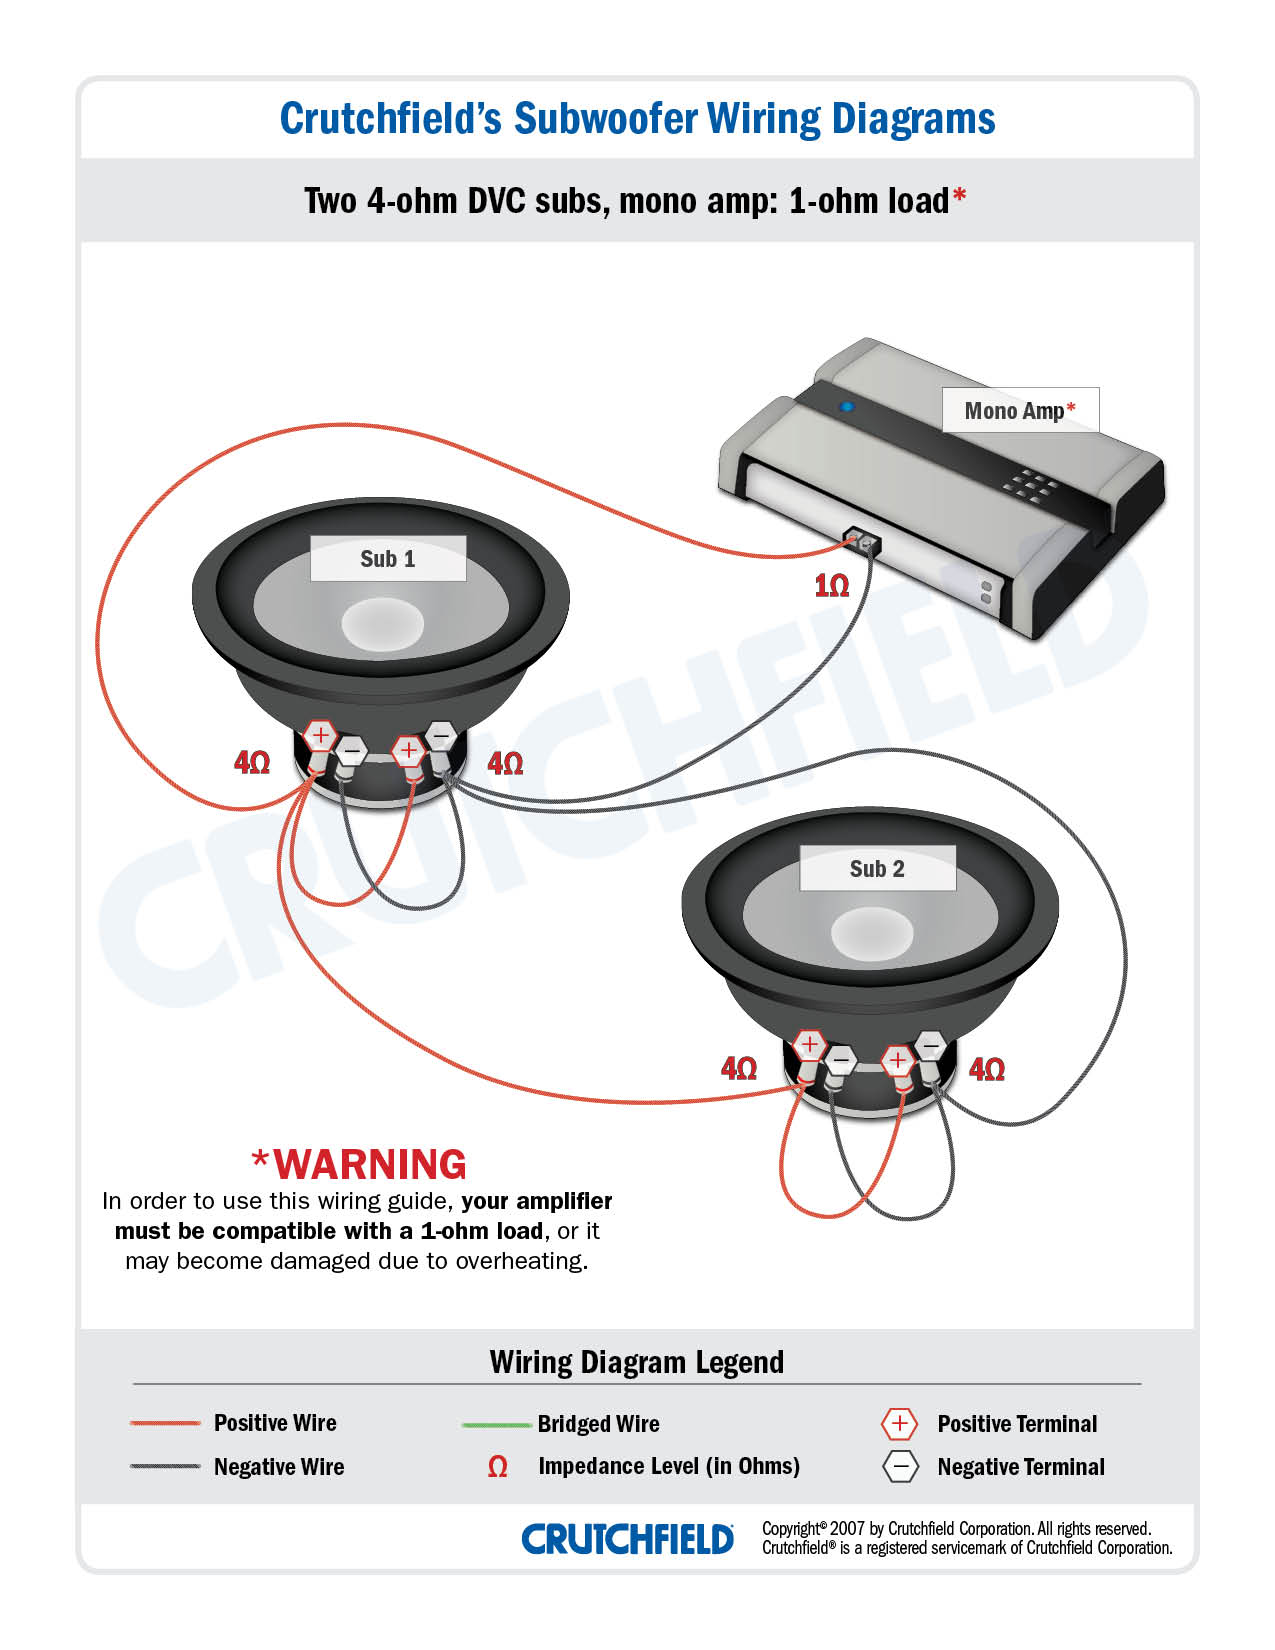 Awe Inspiring Subwoofer Wiring Diagrams How To Wire Your Subs Wiring Digital Resources Funapmognl